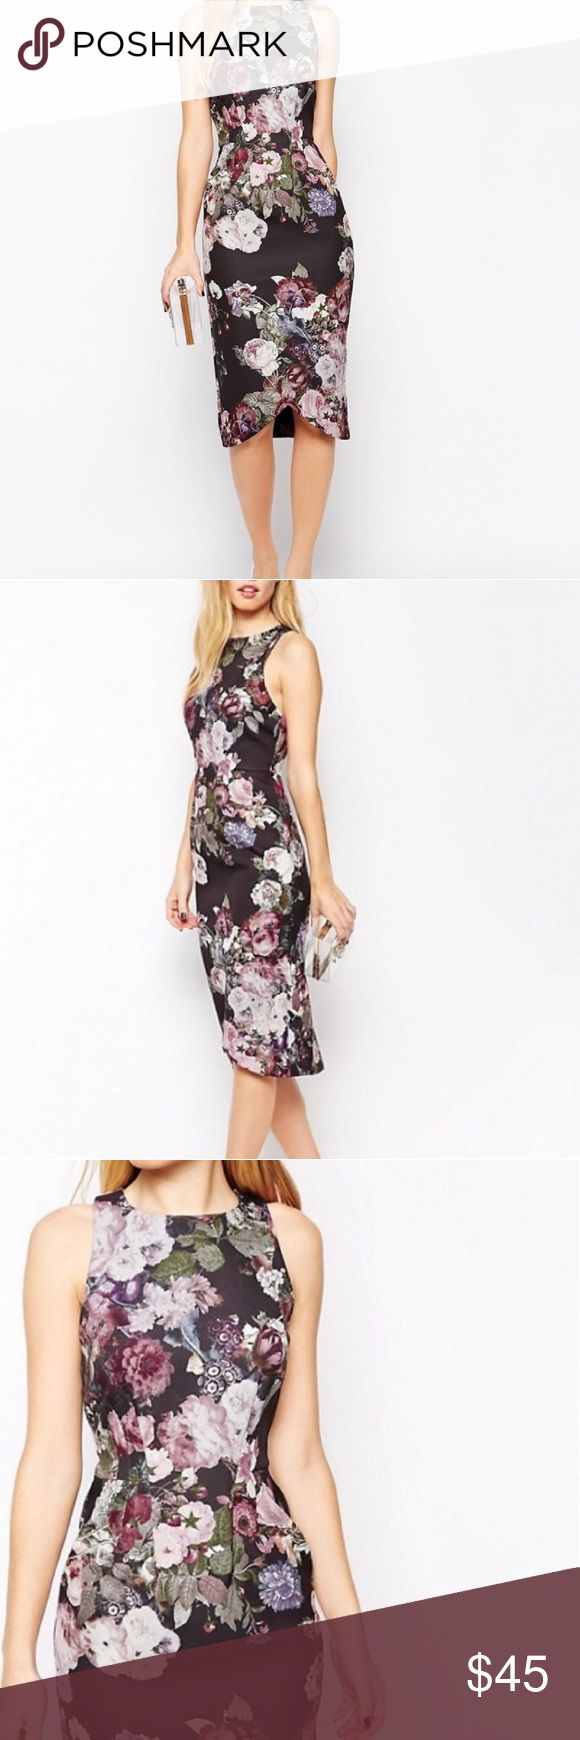 ASOS | Floral Scuba Dress Lovely and classy yet curve hugging to add some intrigue!  * Florals in purple/pink hues * High neck * Poly/elastane blend  * Cutaway shoulders w/low armholes (see last pic) * Tulip hem comes up in front * Back vent * Hidden back zip * I found the sizing a bit unusual on this dress so plz be sure to compare measurements   L 42-46"